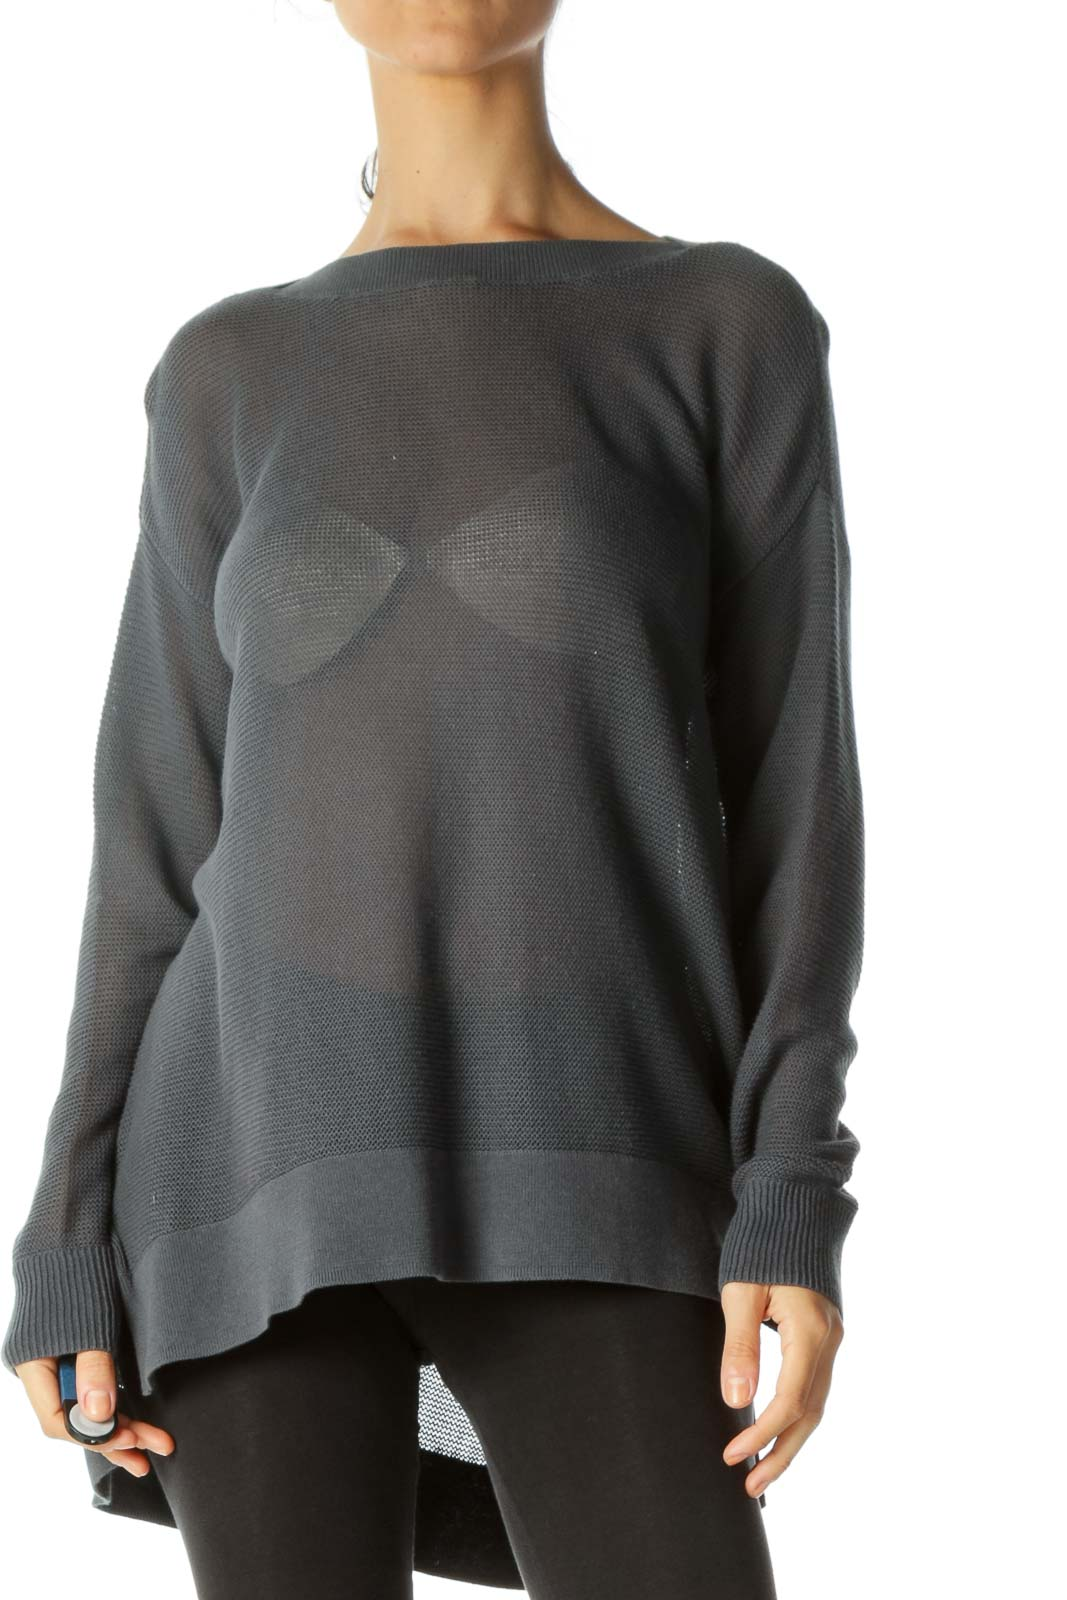 Gray Round Neck Soft See-Through Long Sleeve Knit Top Front